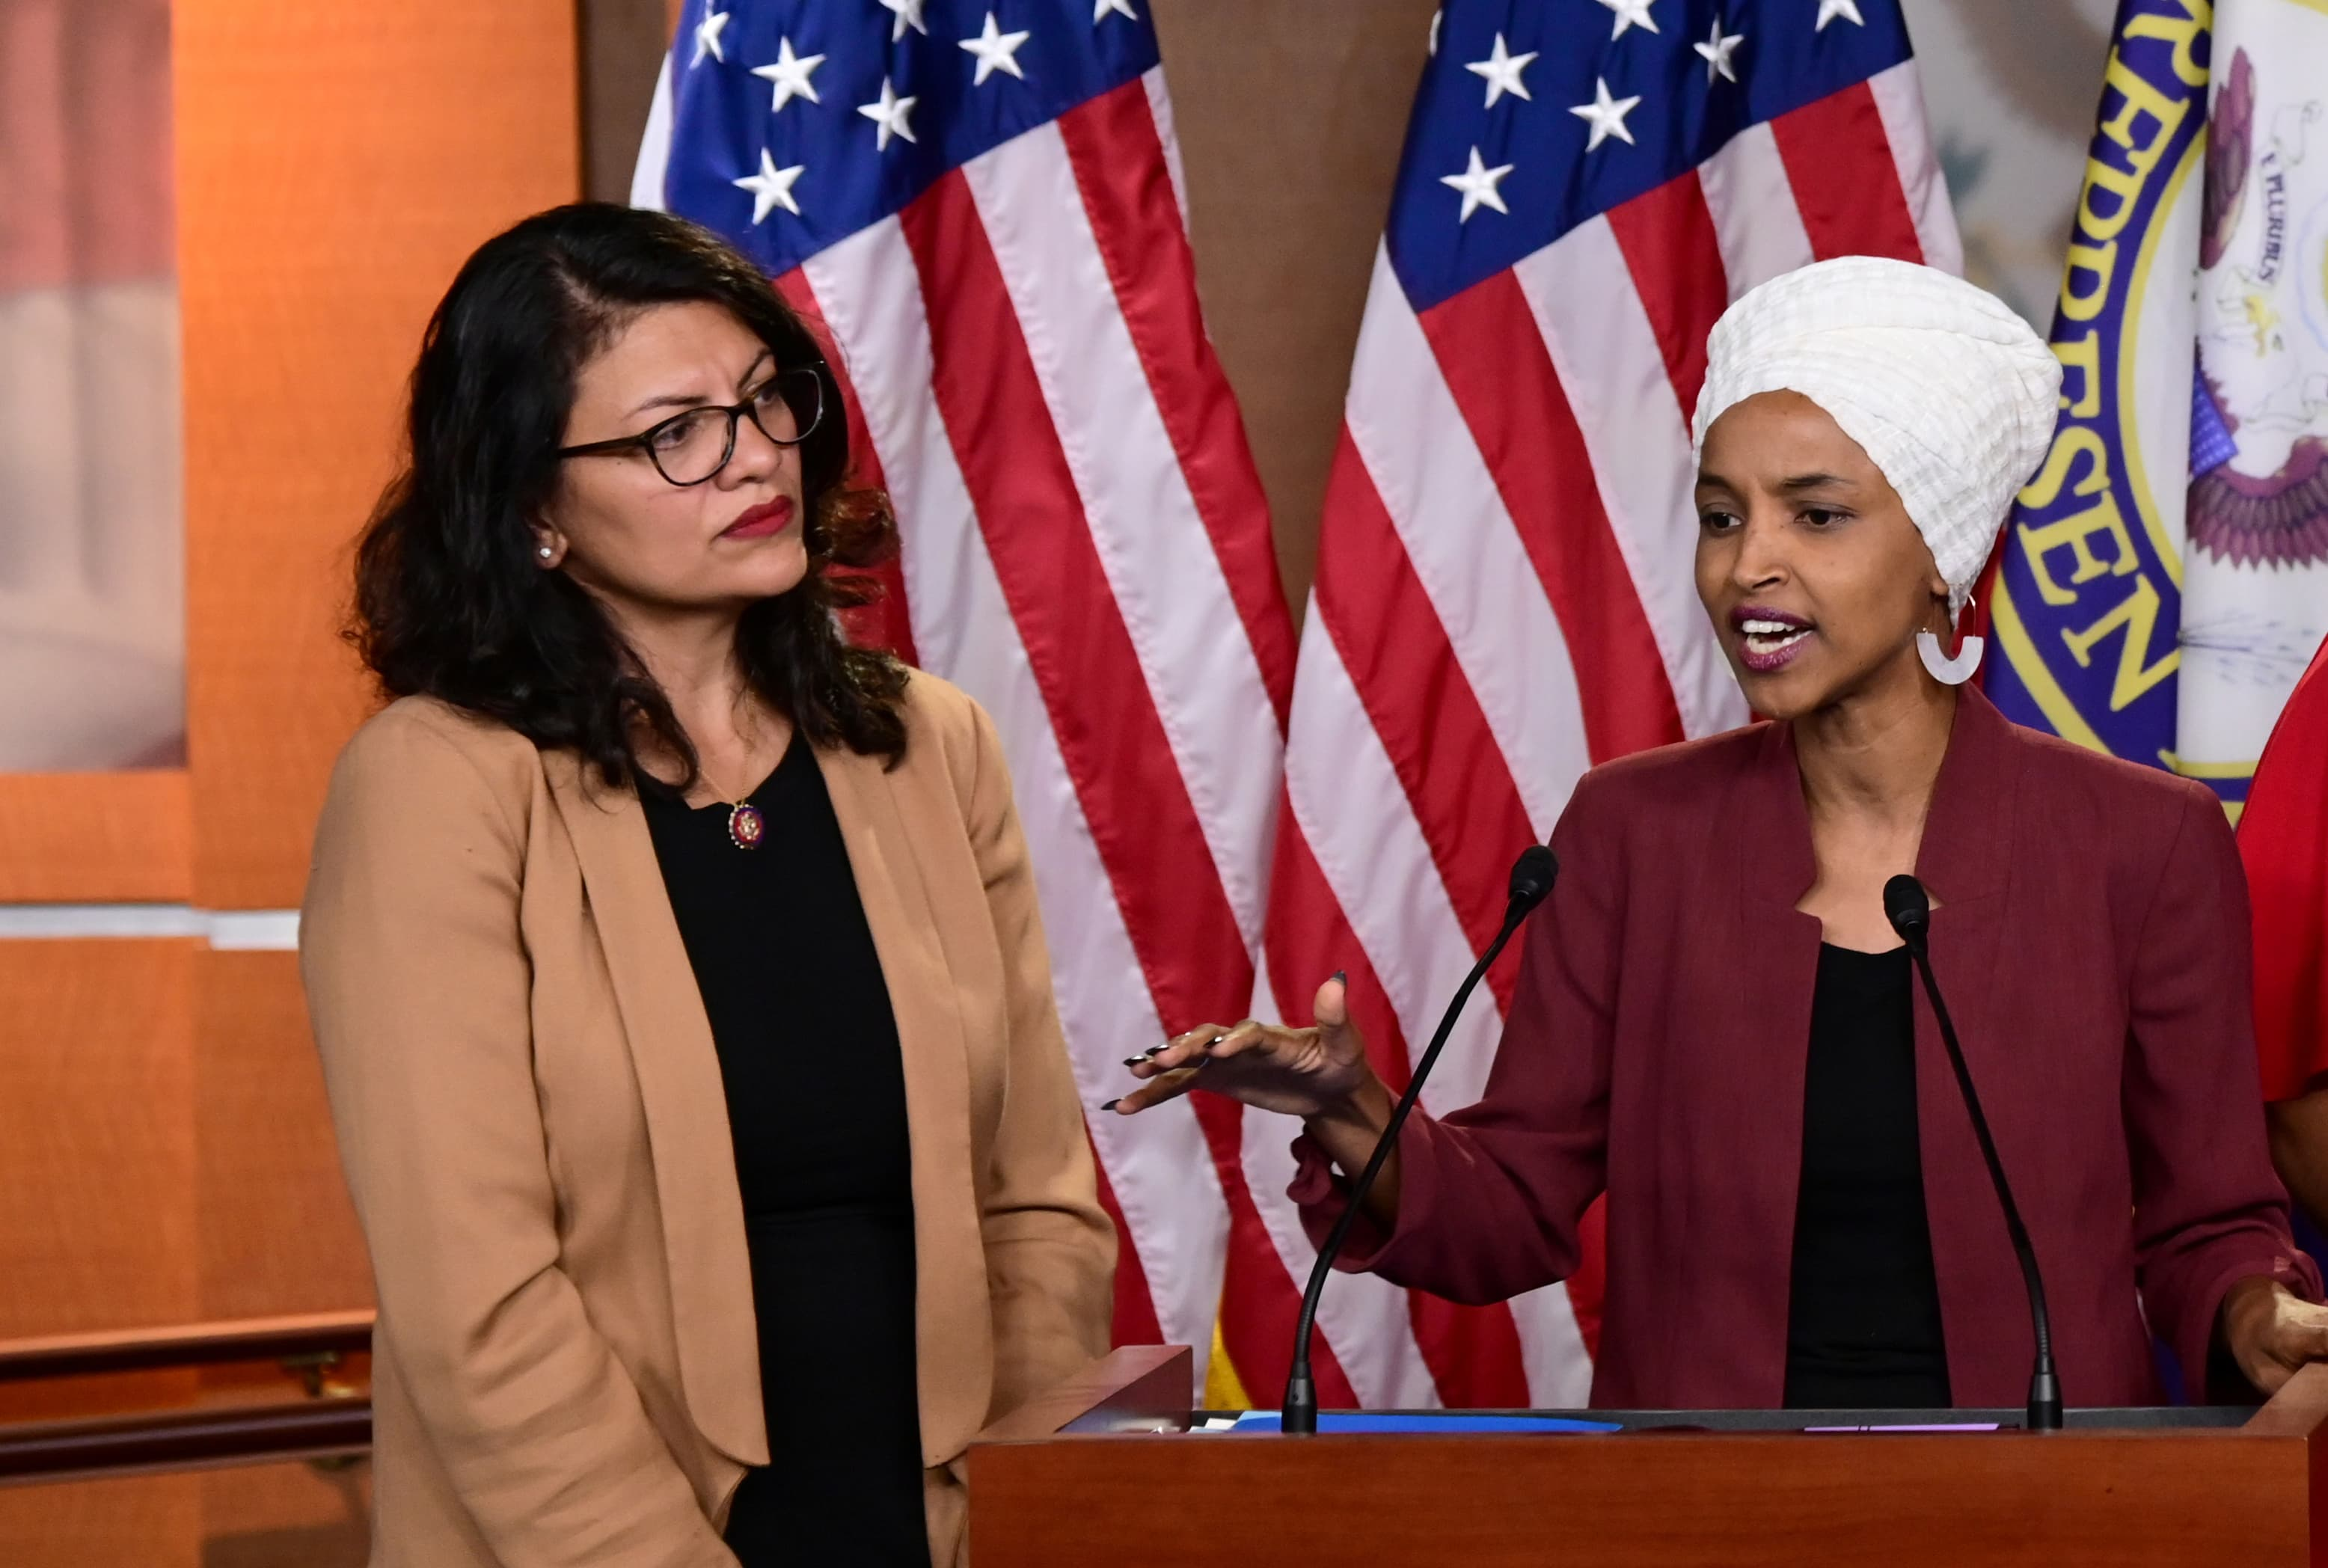 Israel bars Democrats Tlaib and Omar from visiting after Trump claims they hate 'all Jewish people'